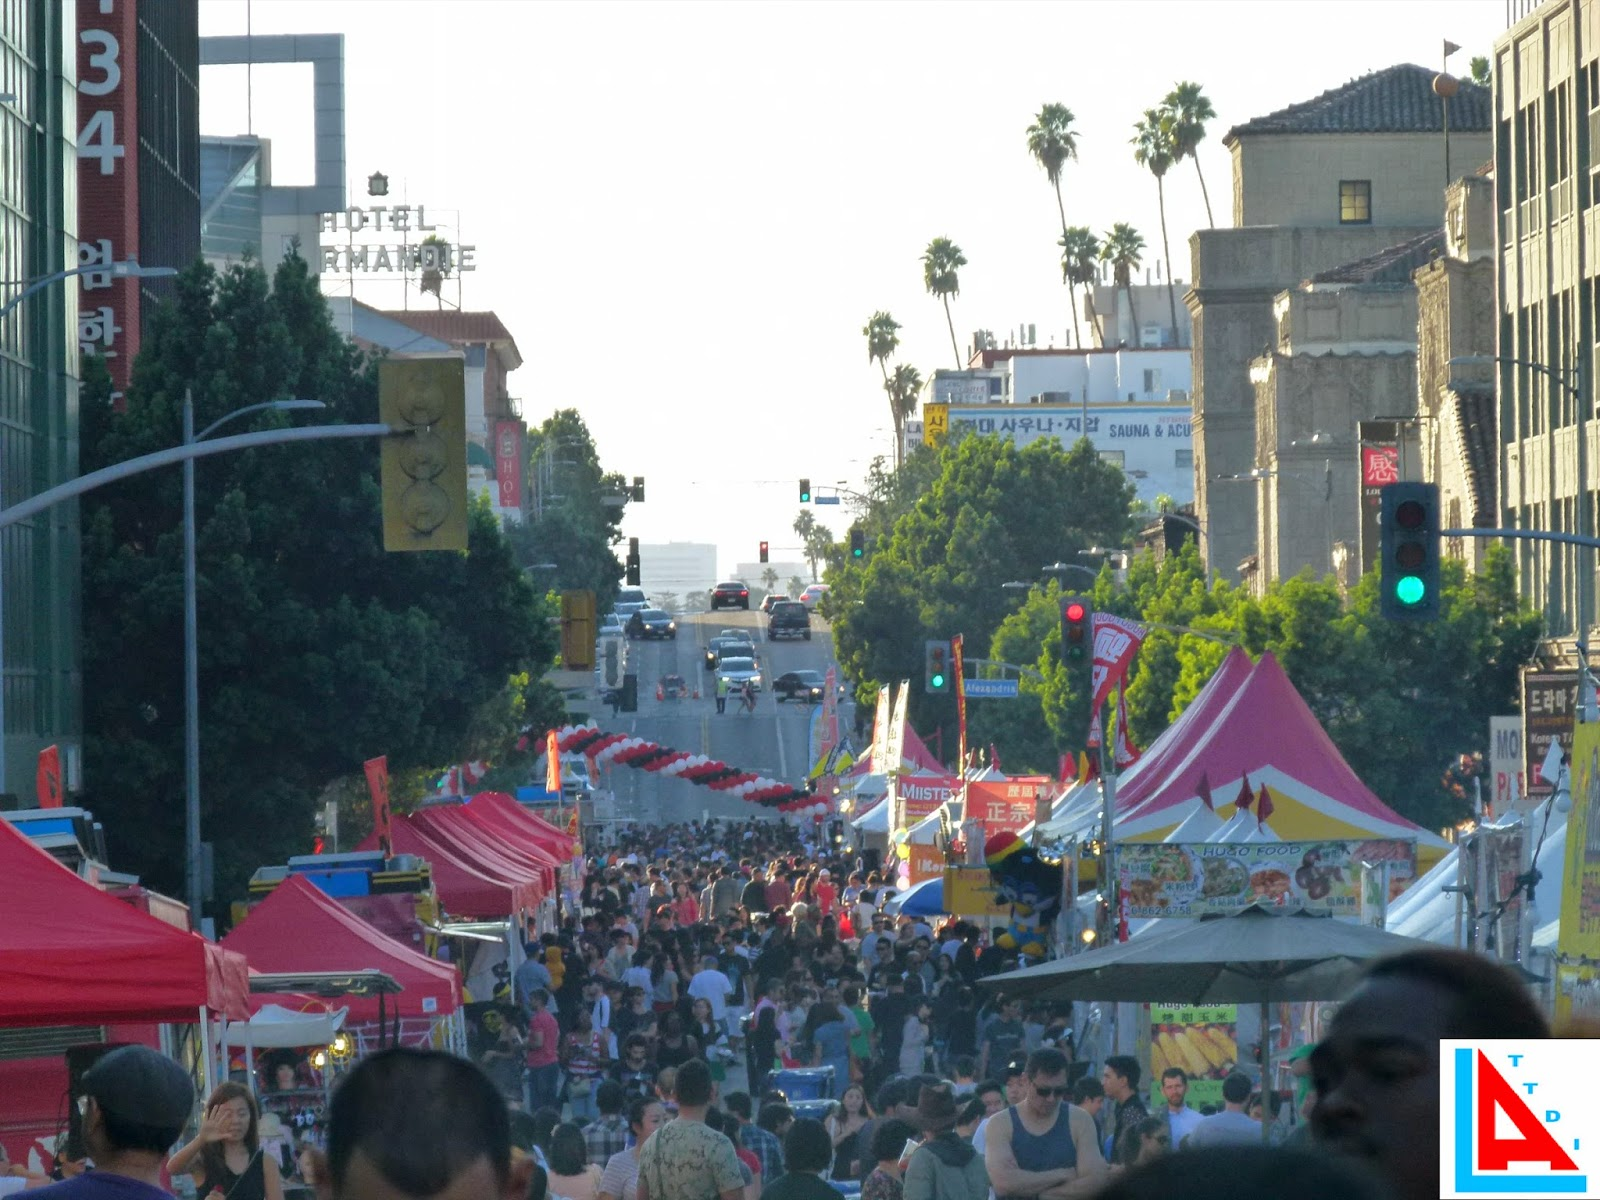 things to do in los angeles: ktown night market halloween food fest